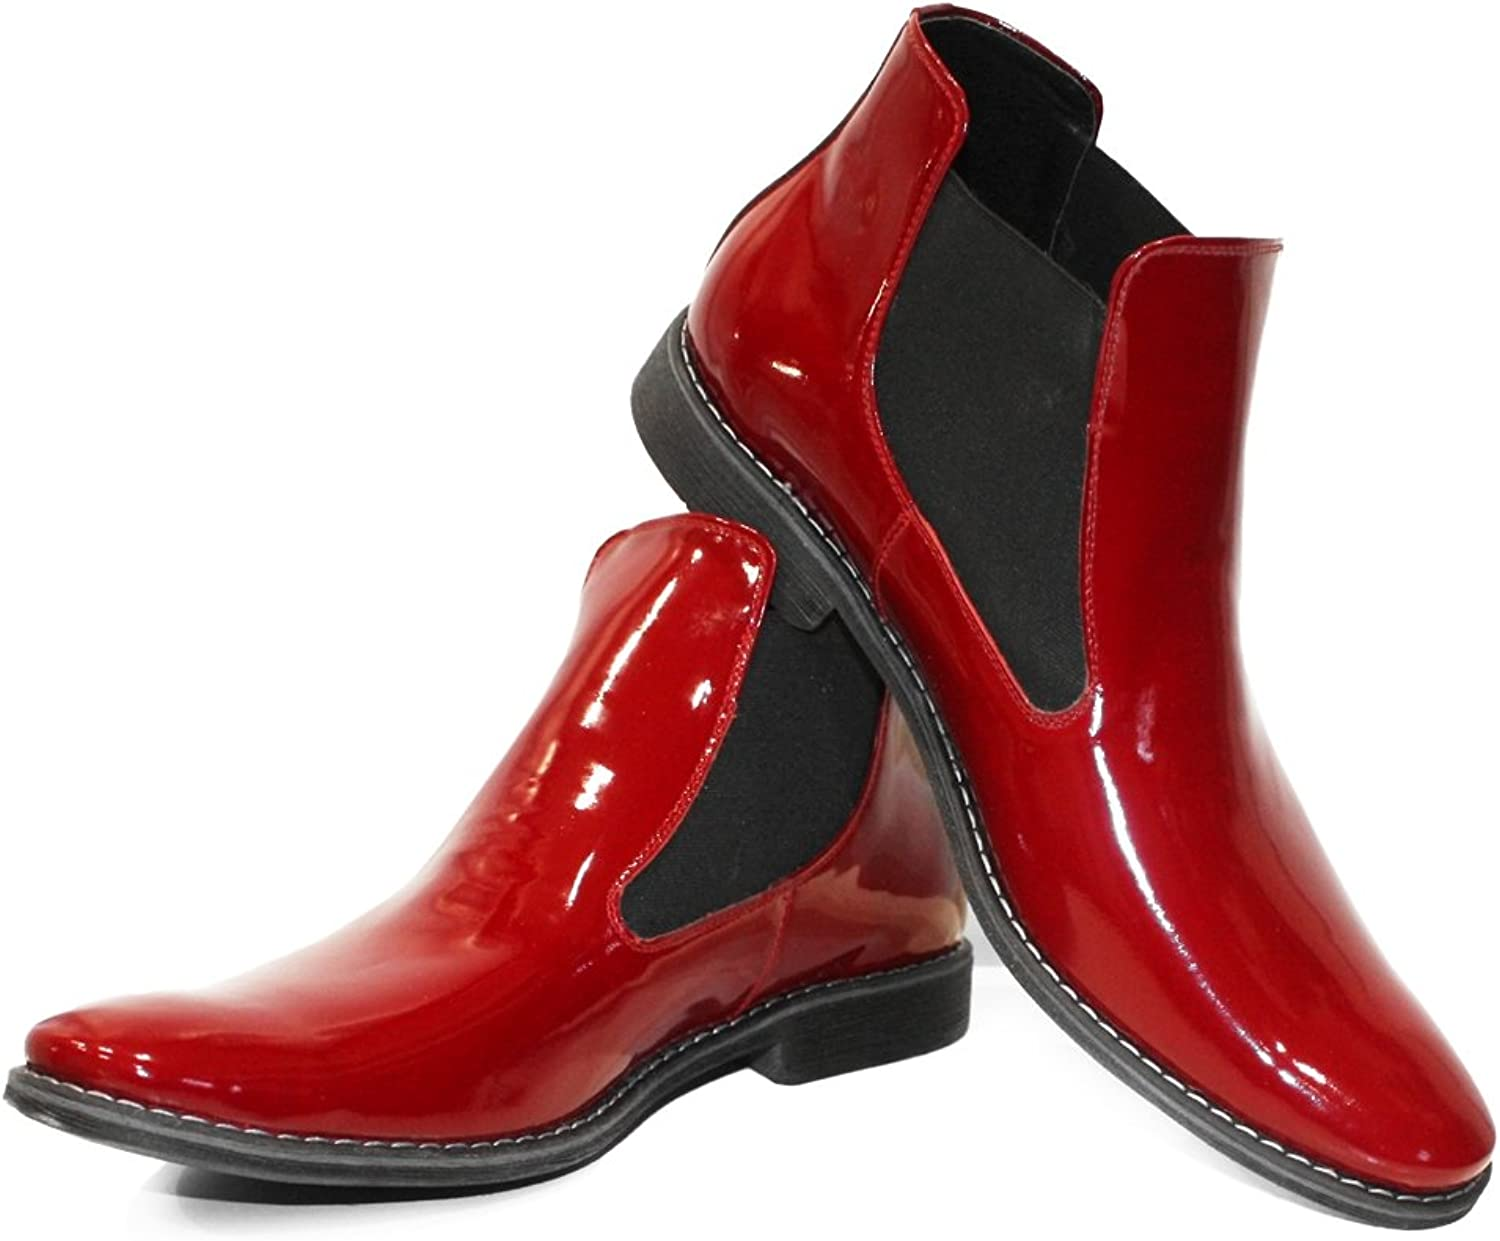 Peppeshoes Modello Ruby - Handmade Italian Leather Mens color Red Ankle Chelsea Boots - Cowhide Patent Leather - Slip-On